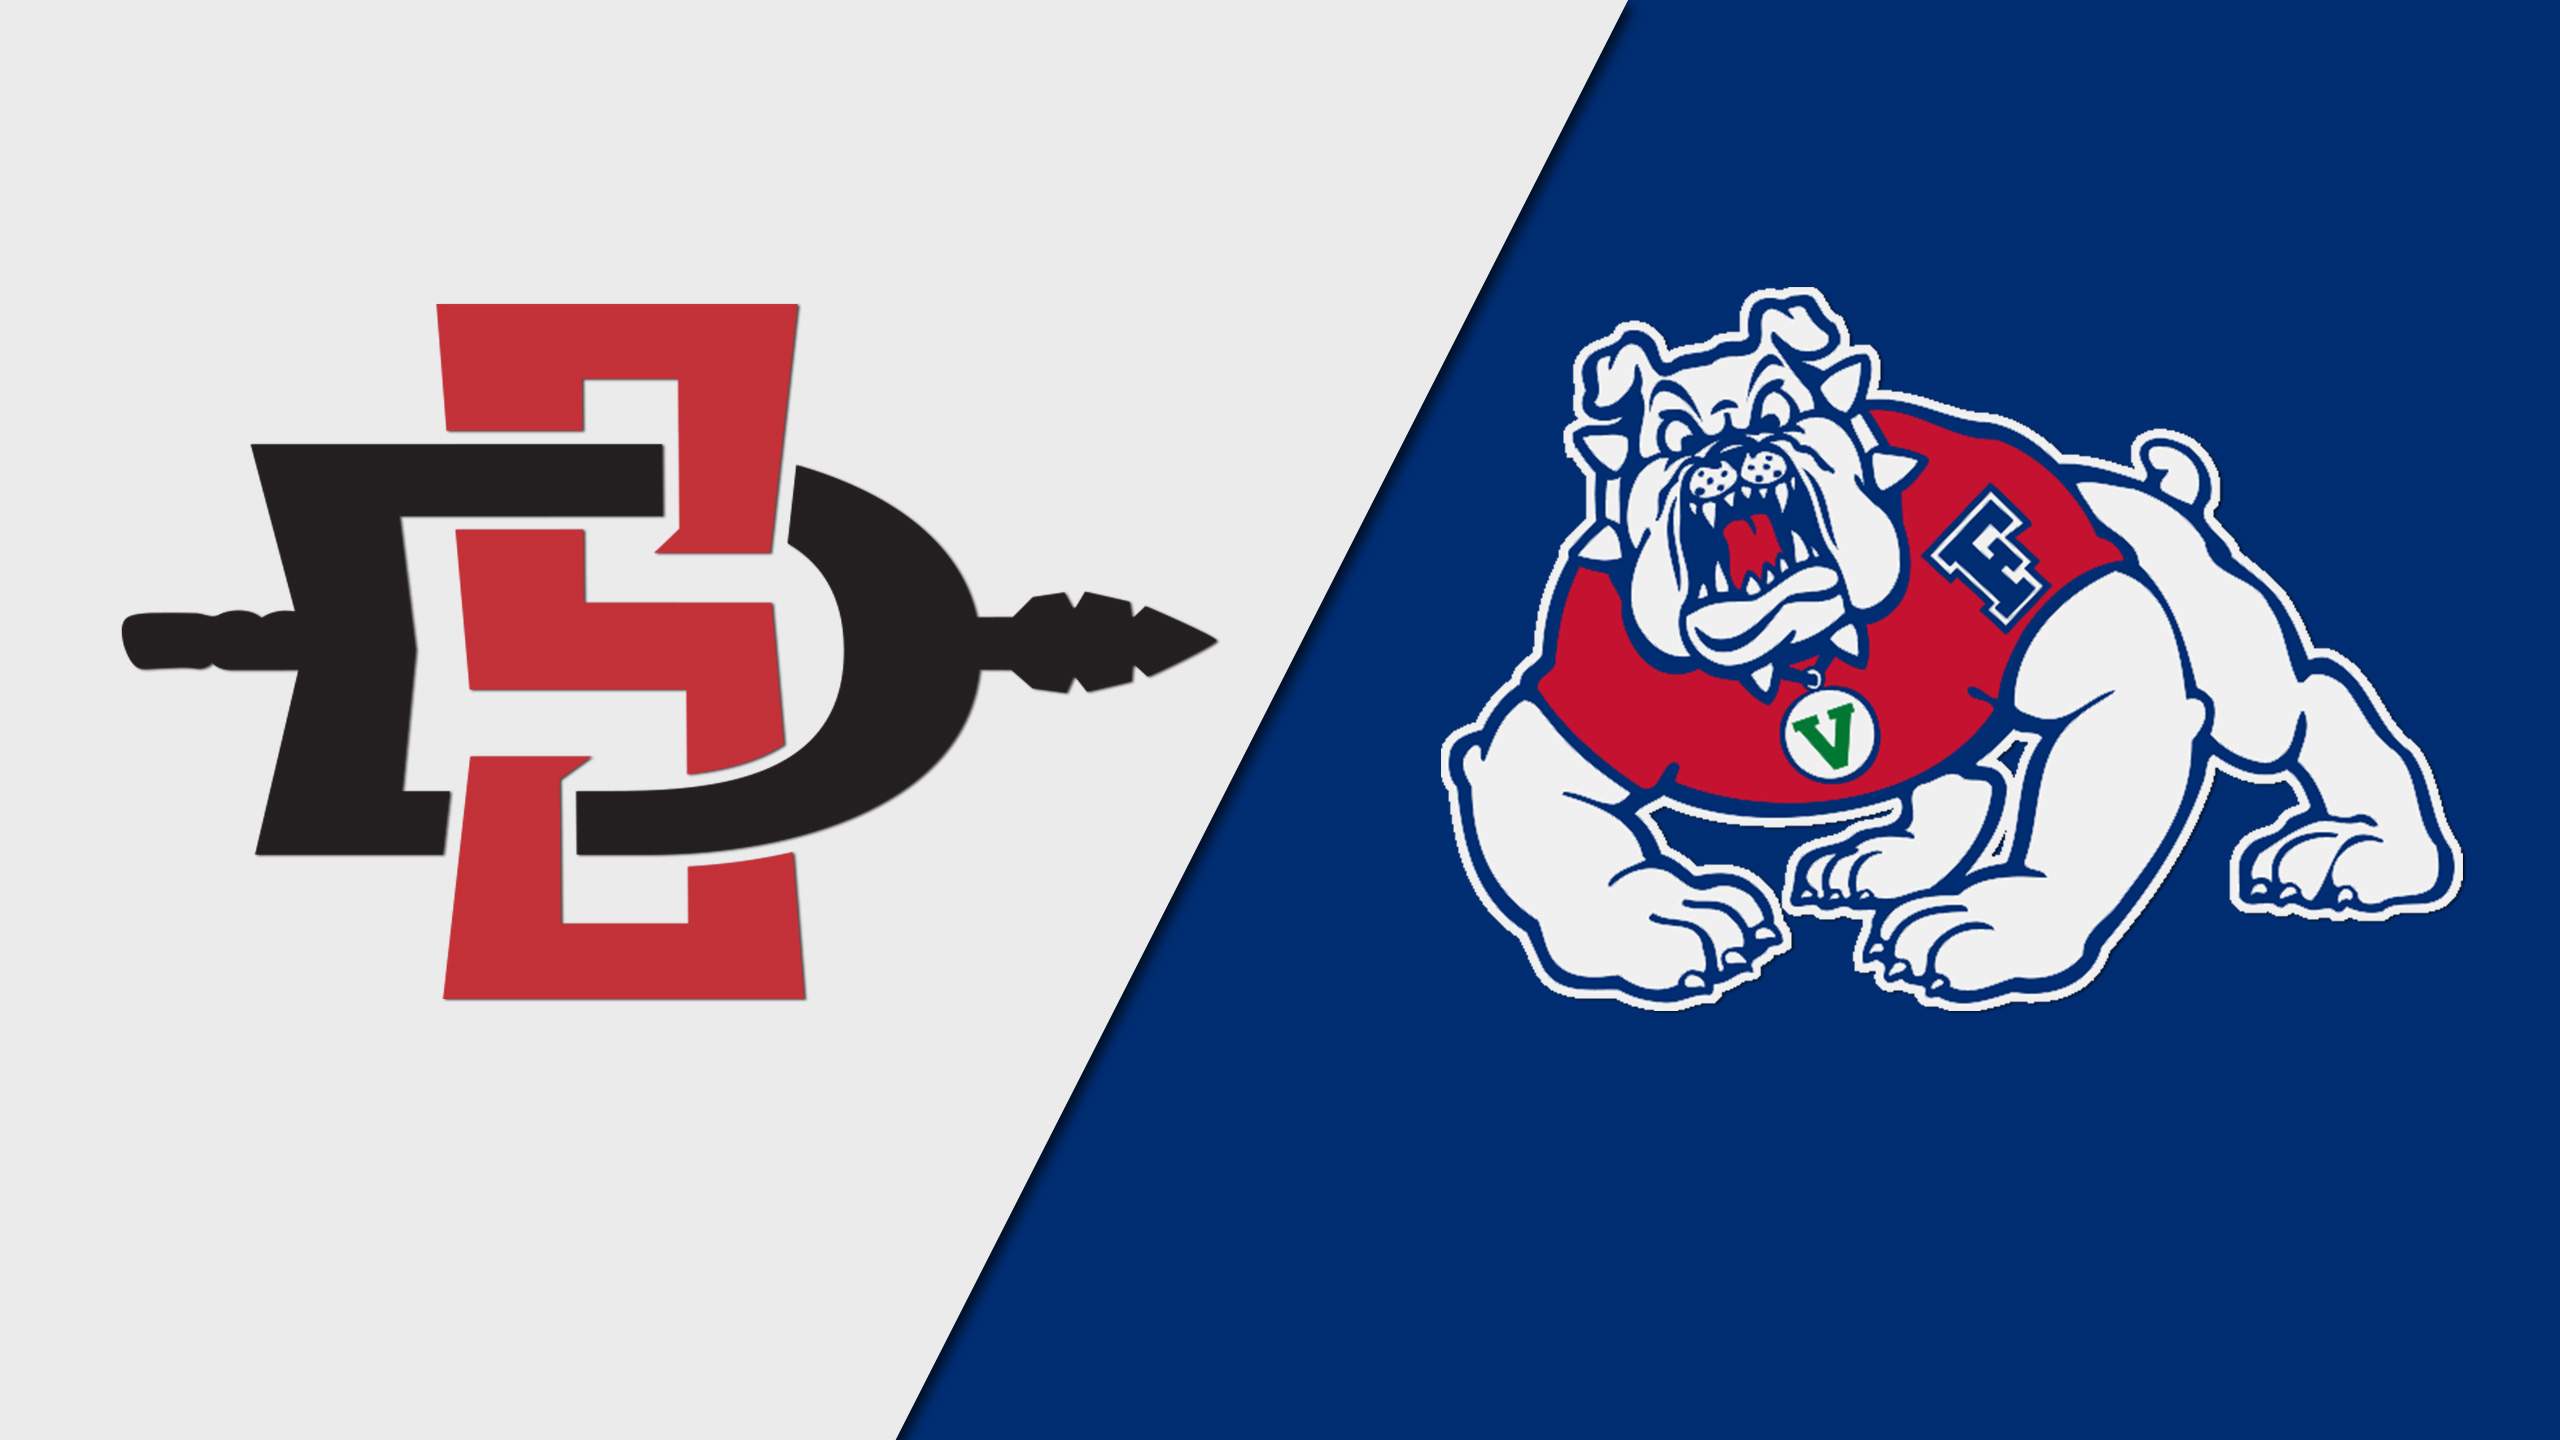 San Diego State vs. Fresno State (re-air)